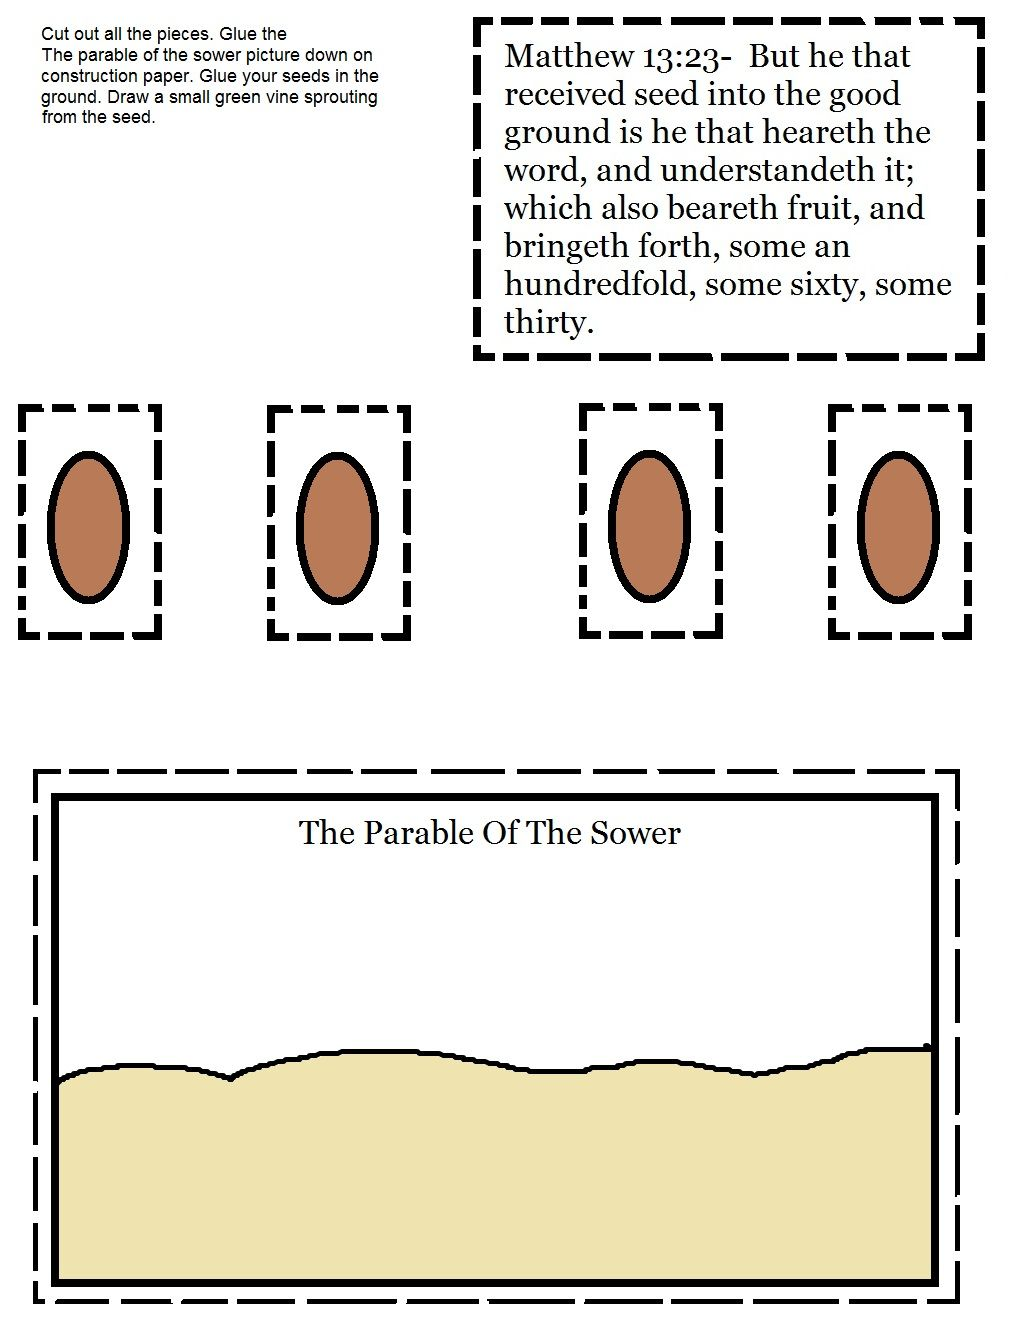 The Parable Of The Sower Activity Sheet Jpg 1019 1319 Sunday